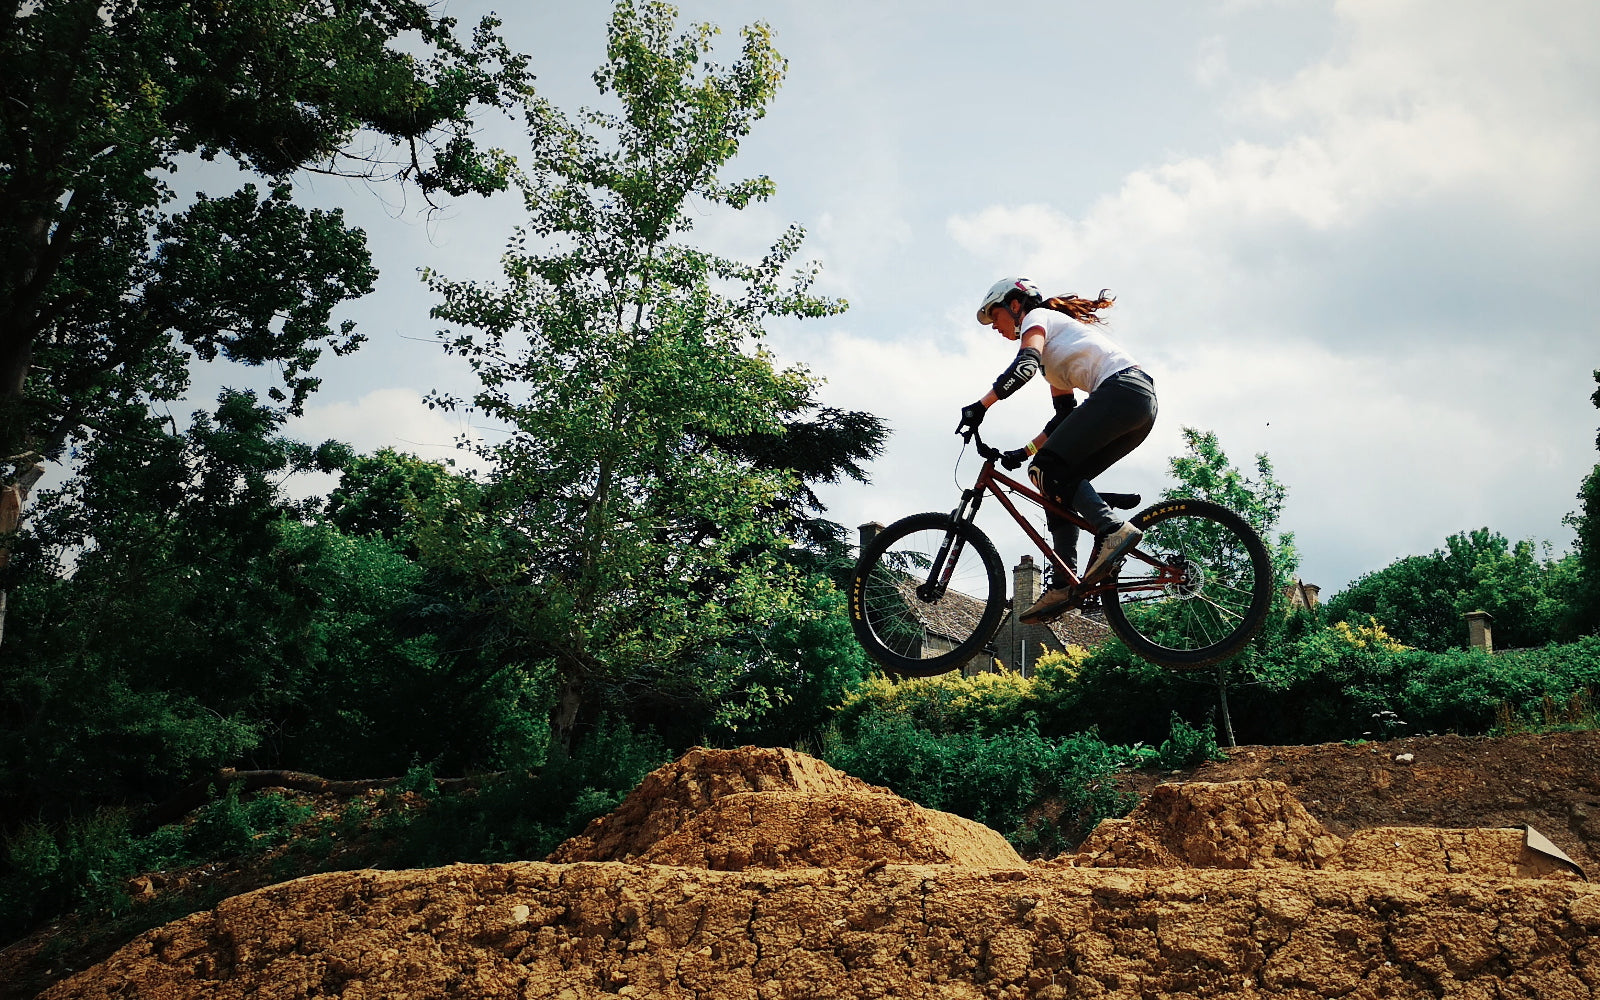 Dirt jumping at fly up 417